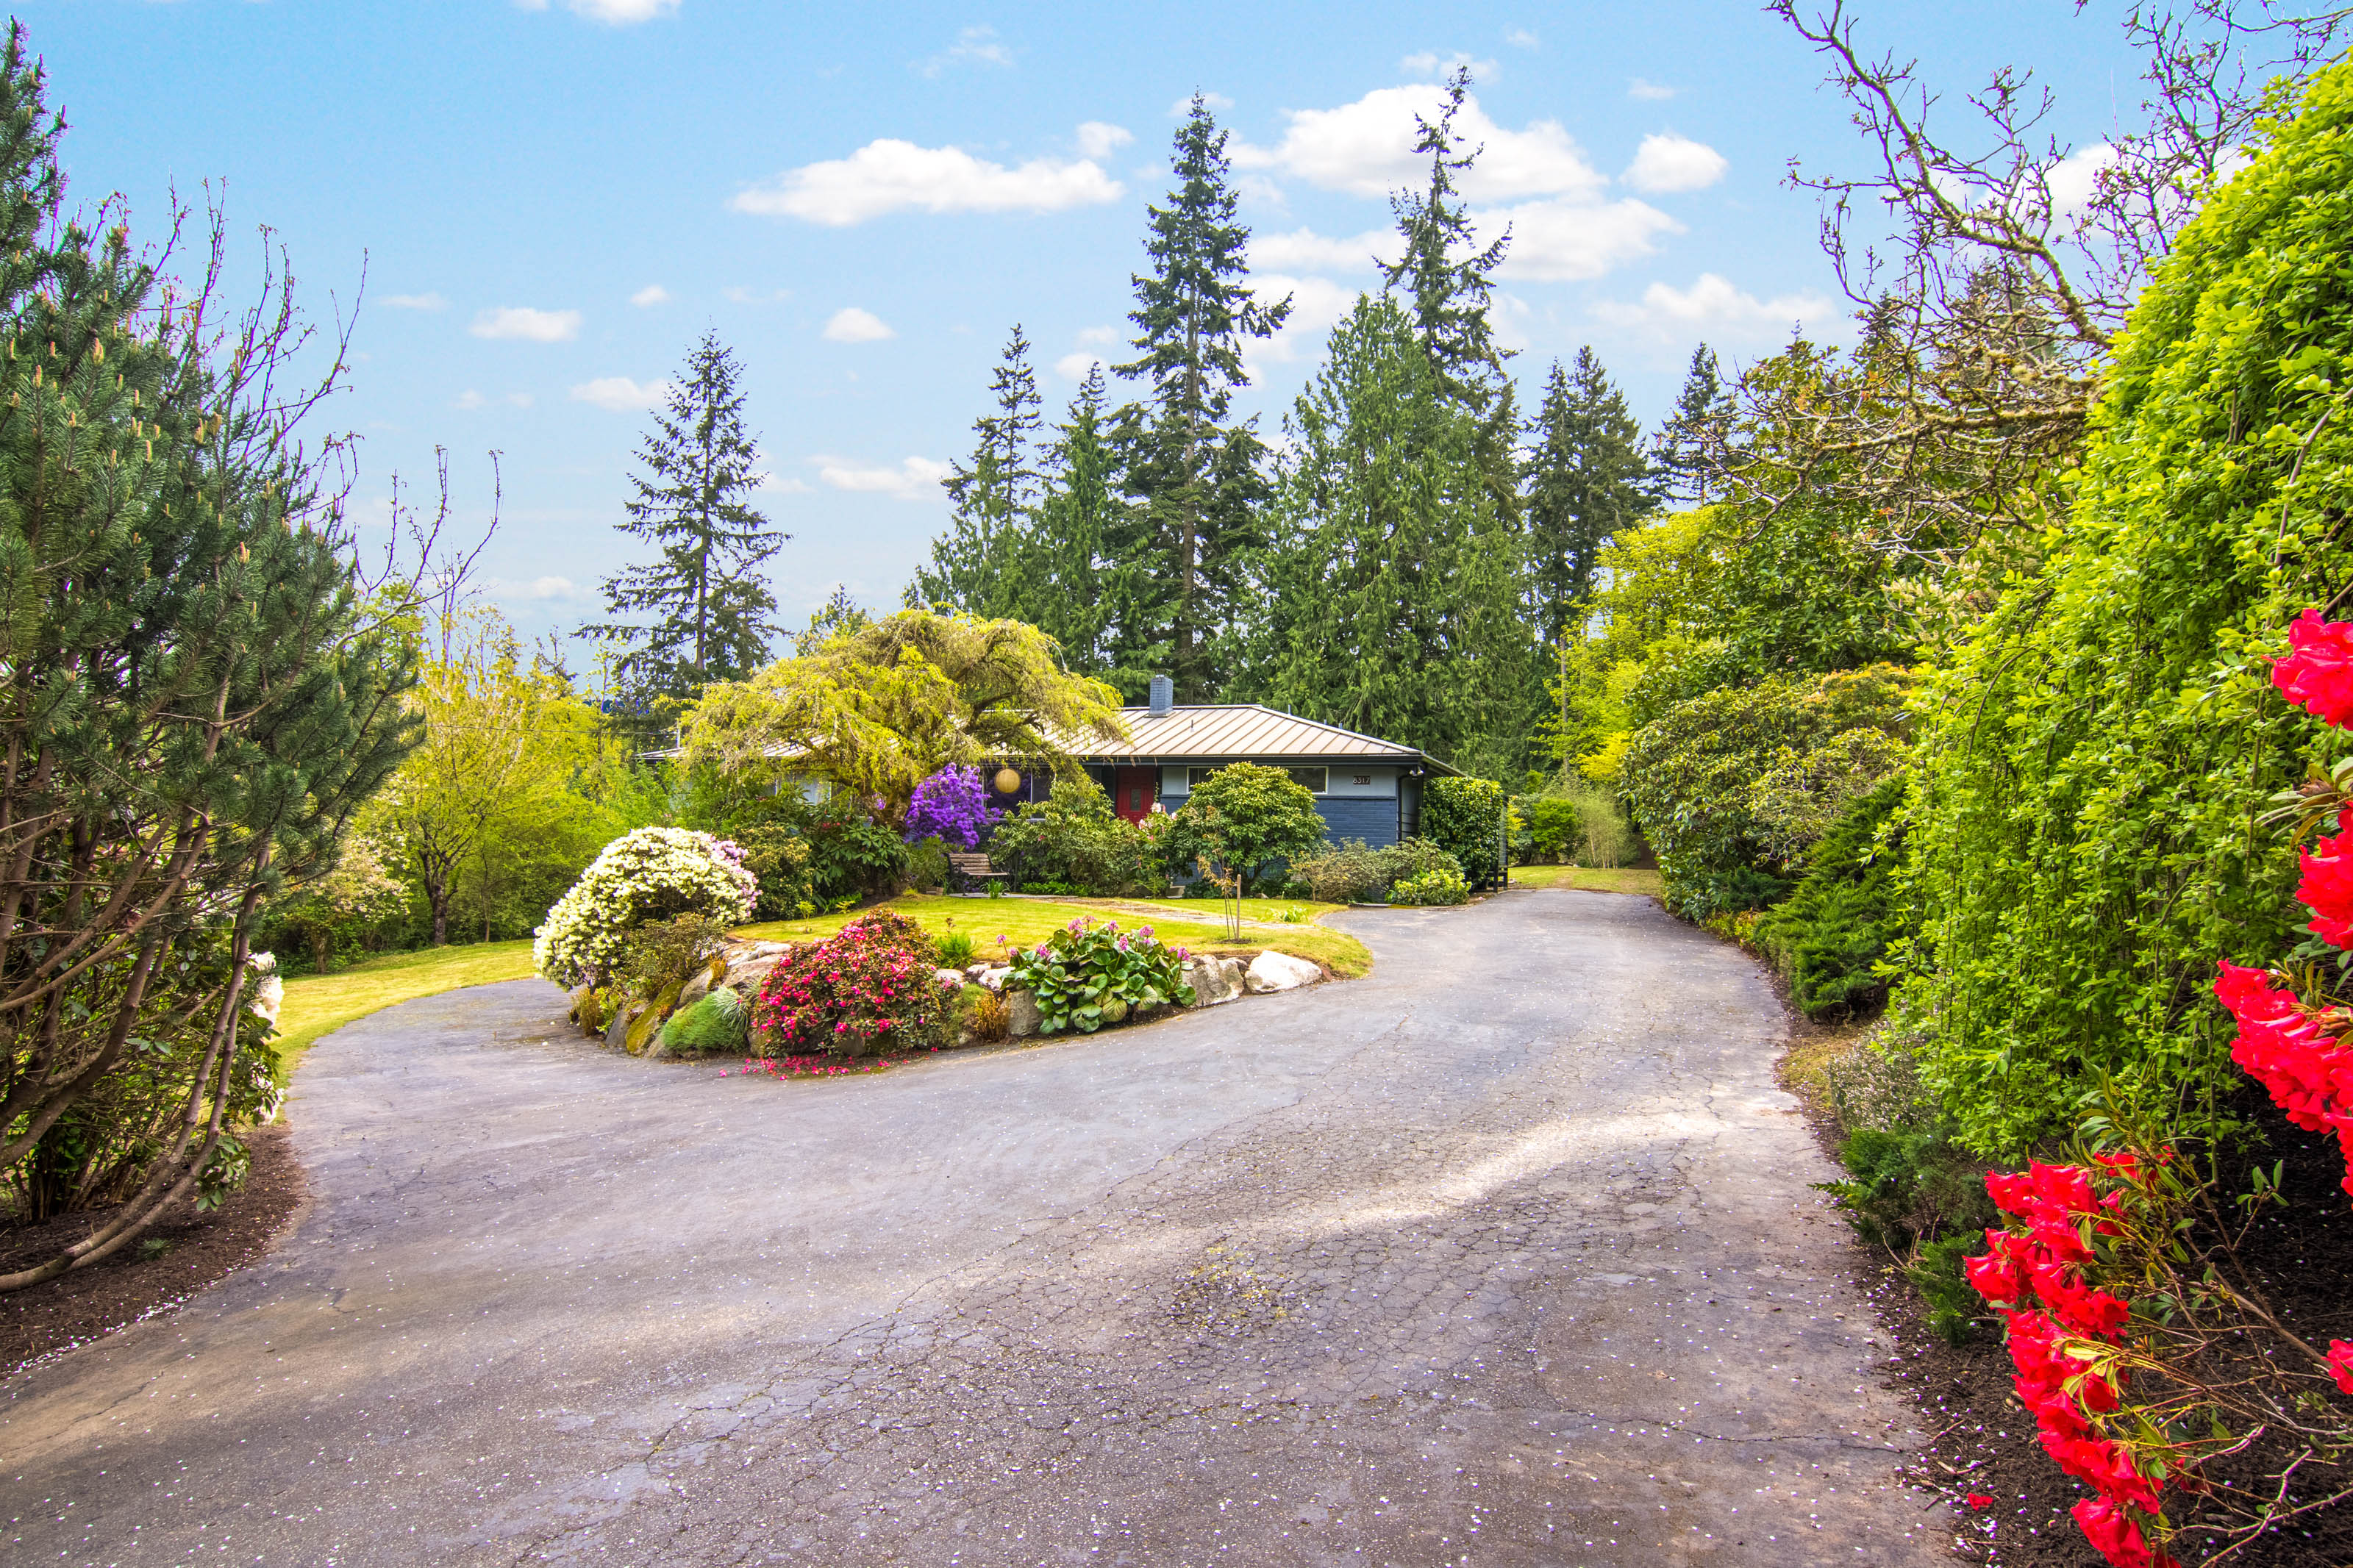 Single Family Home for Sale at 4 Acres in Port Madison 8317 NE Hidden Cove Rd Bainbridge Island, Washington, 98110 United States